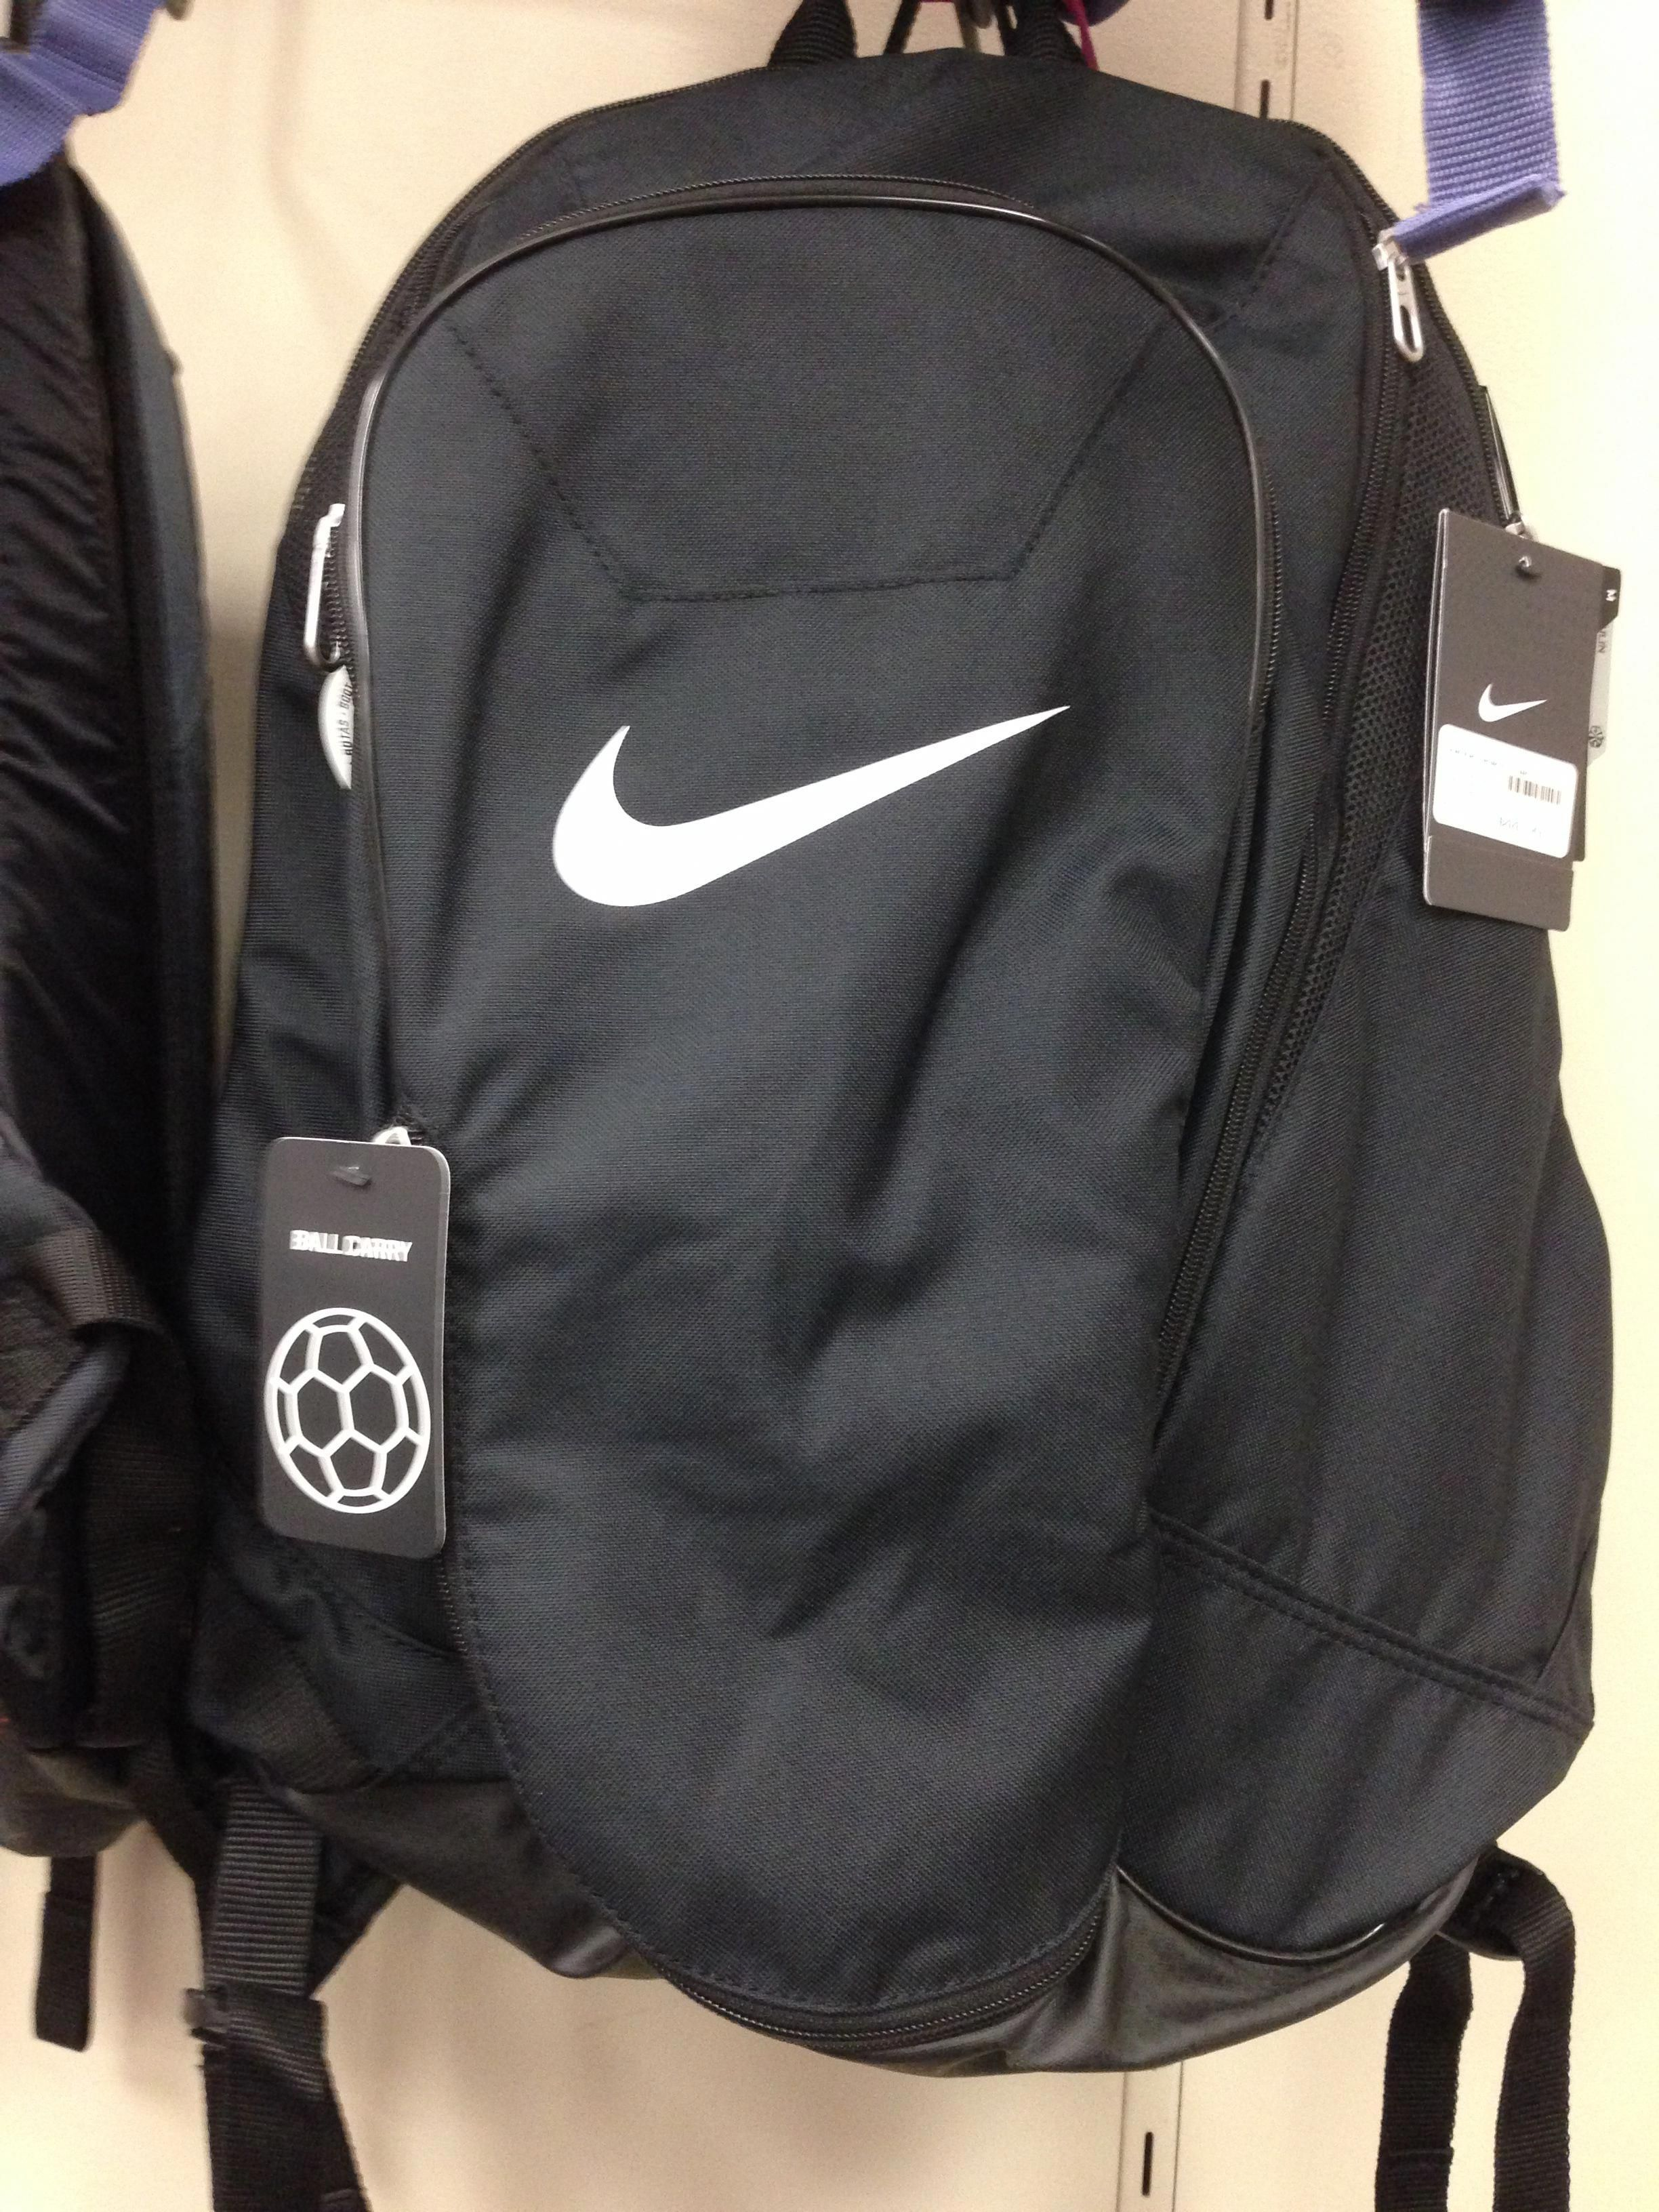 6fd970fa16 Black Nike Soccer Backpack  Backpack with Ball Carry Compartment   soccerexercises